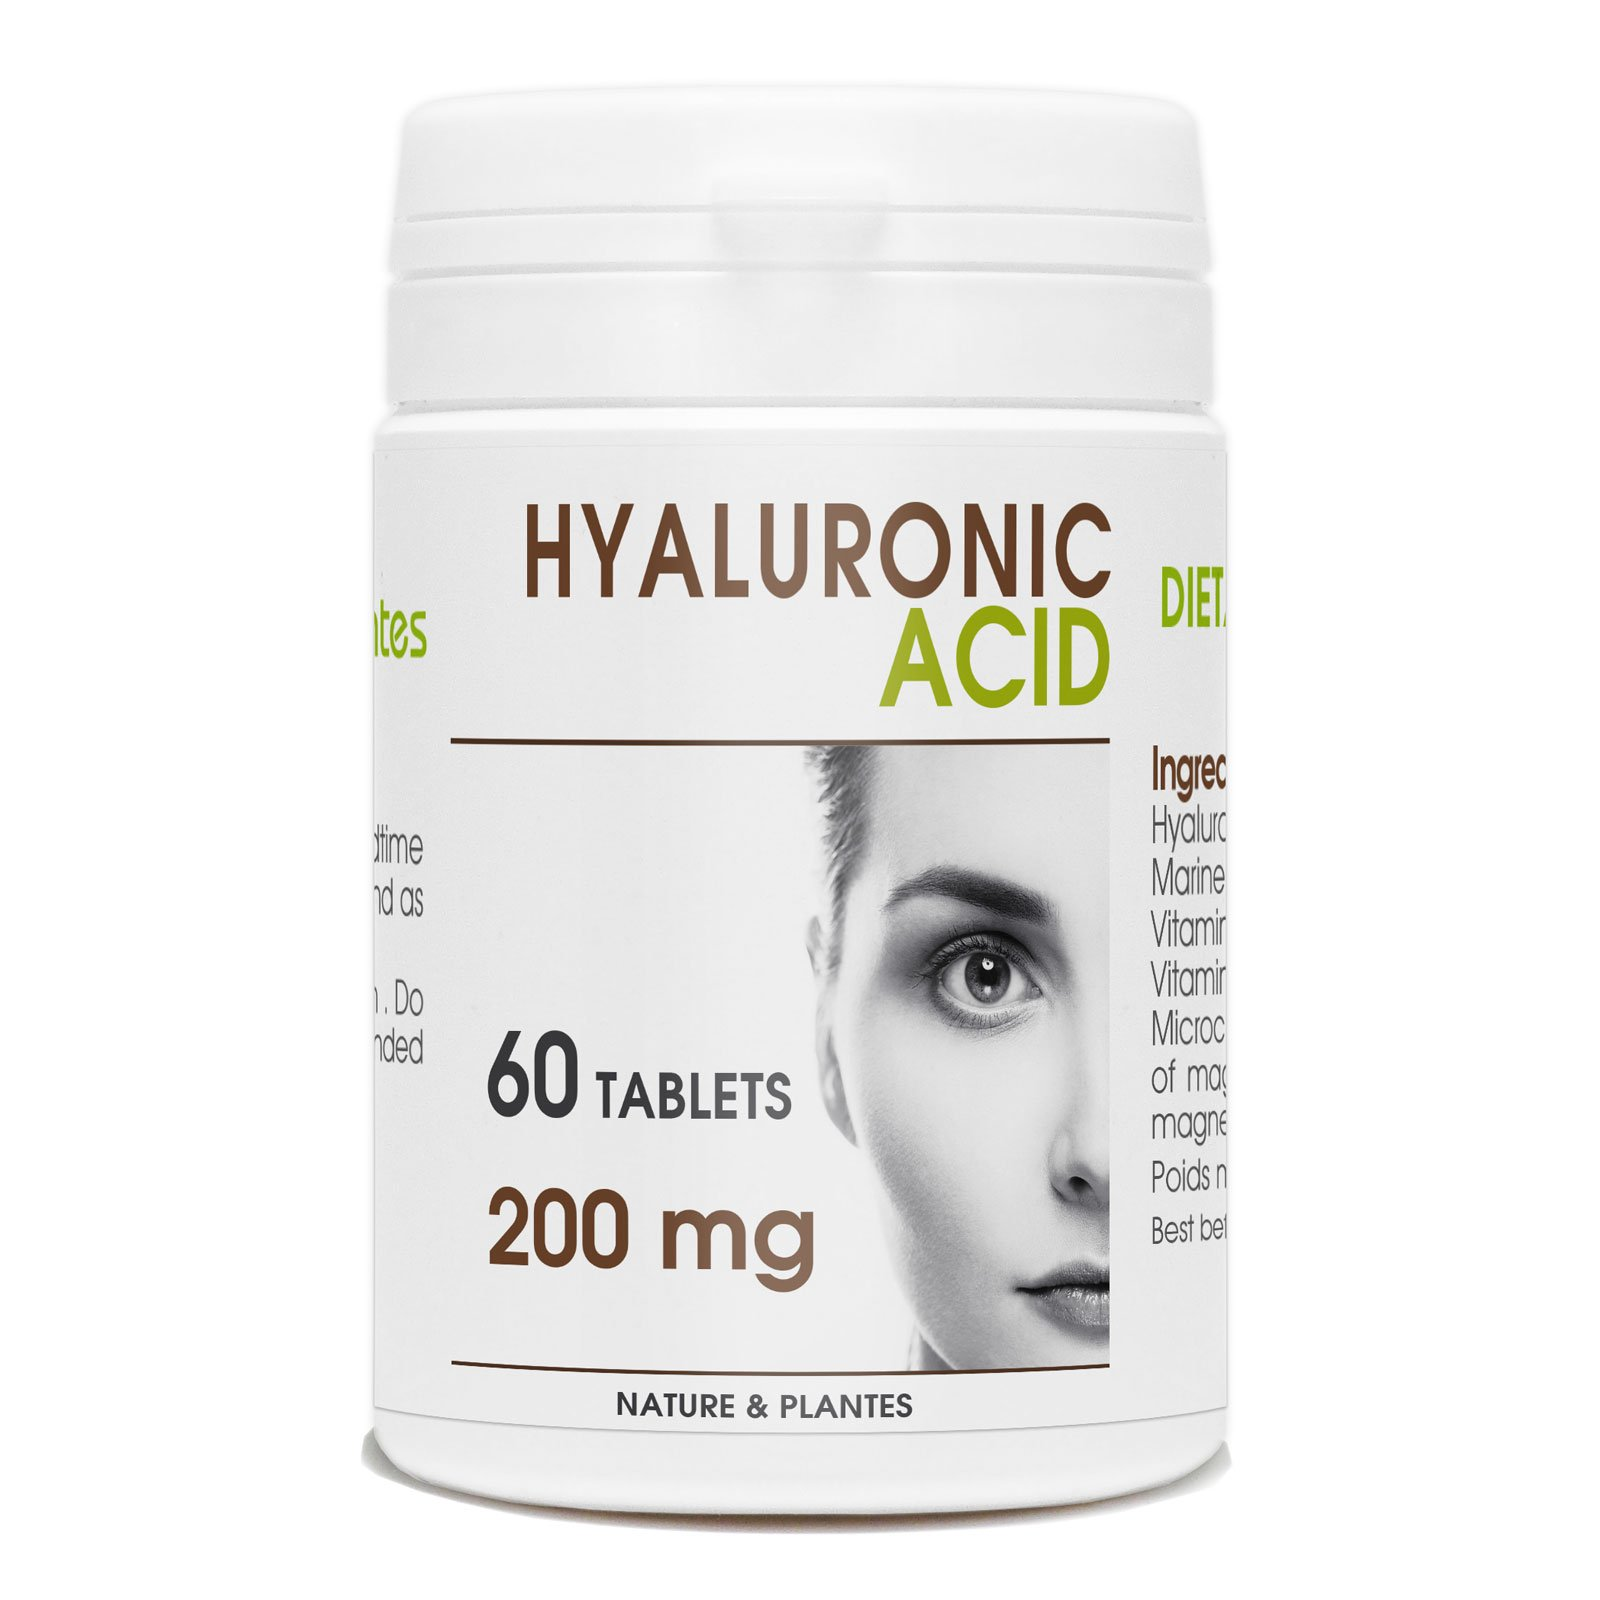 Hyaluronic Acid - 200mg per tablet - 60 Tablets by Nature Land Candles